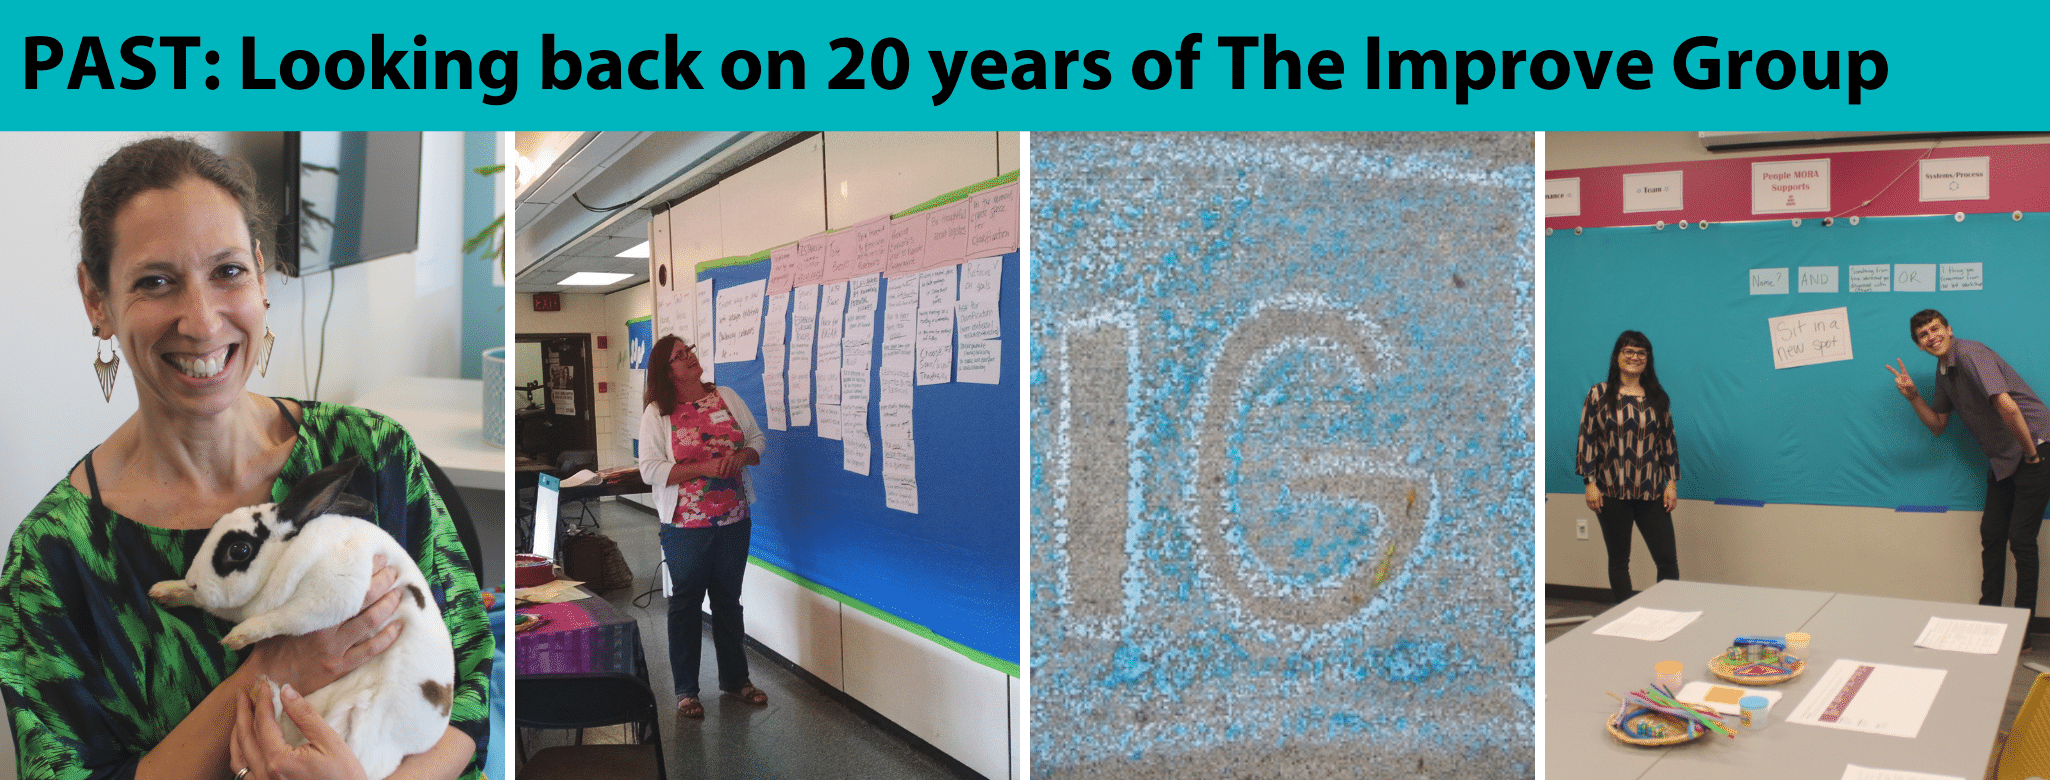 "Image of our team members from over the years and a graphic of text that says ""PAST: Looking back on 20 years of The Improve Group"""